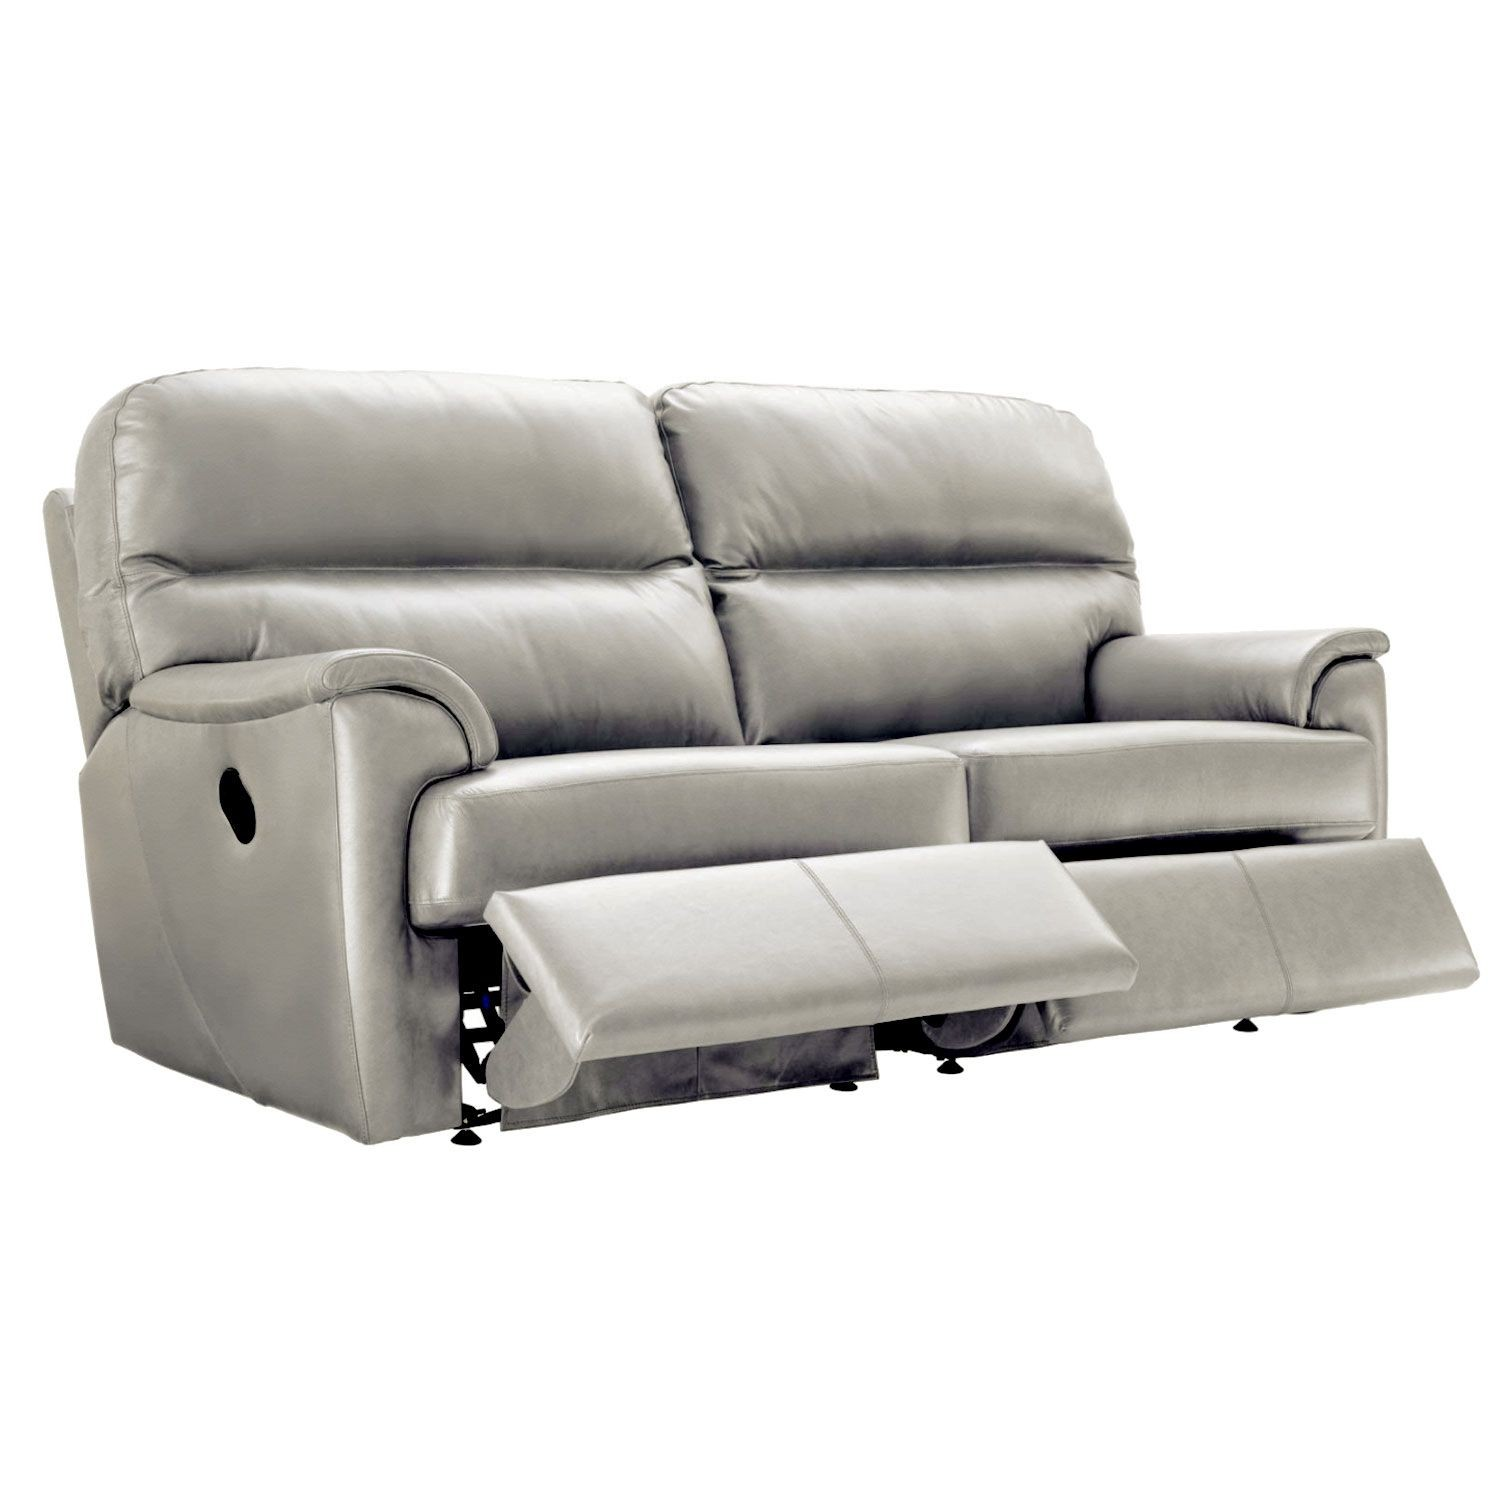 G Plan Watson Three Seater Double Recliner Leather Sofa